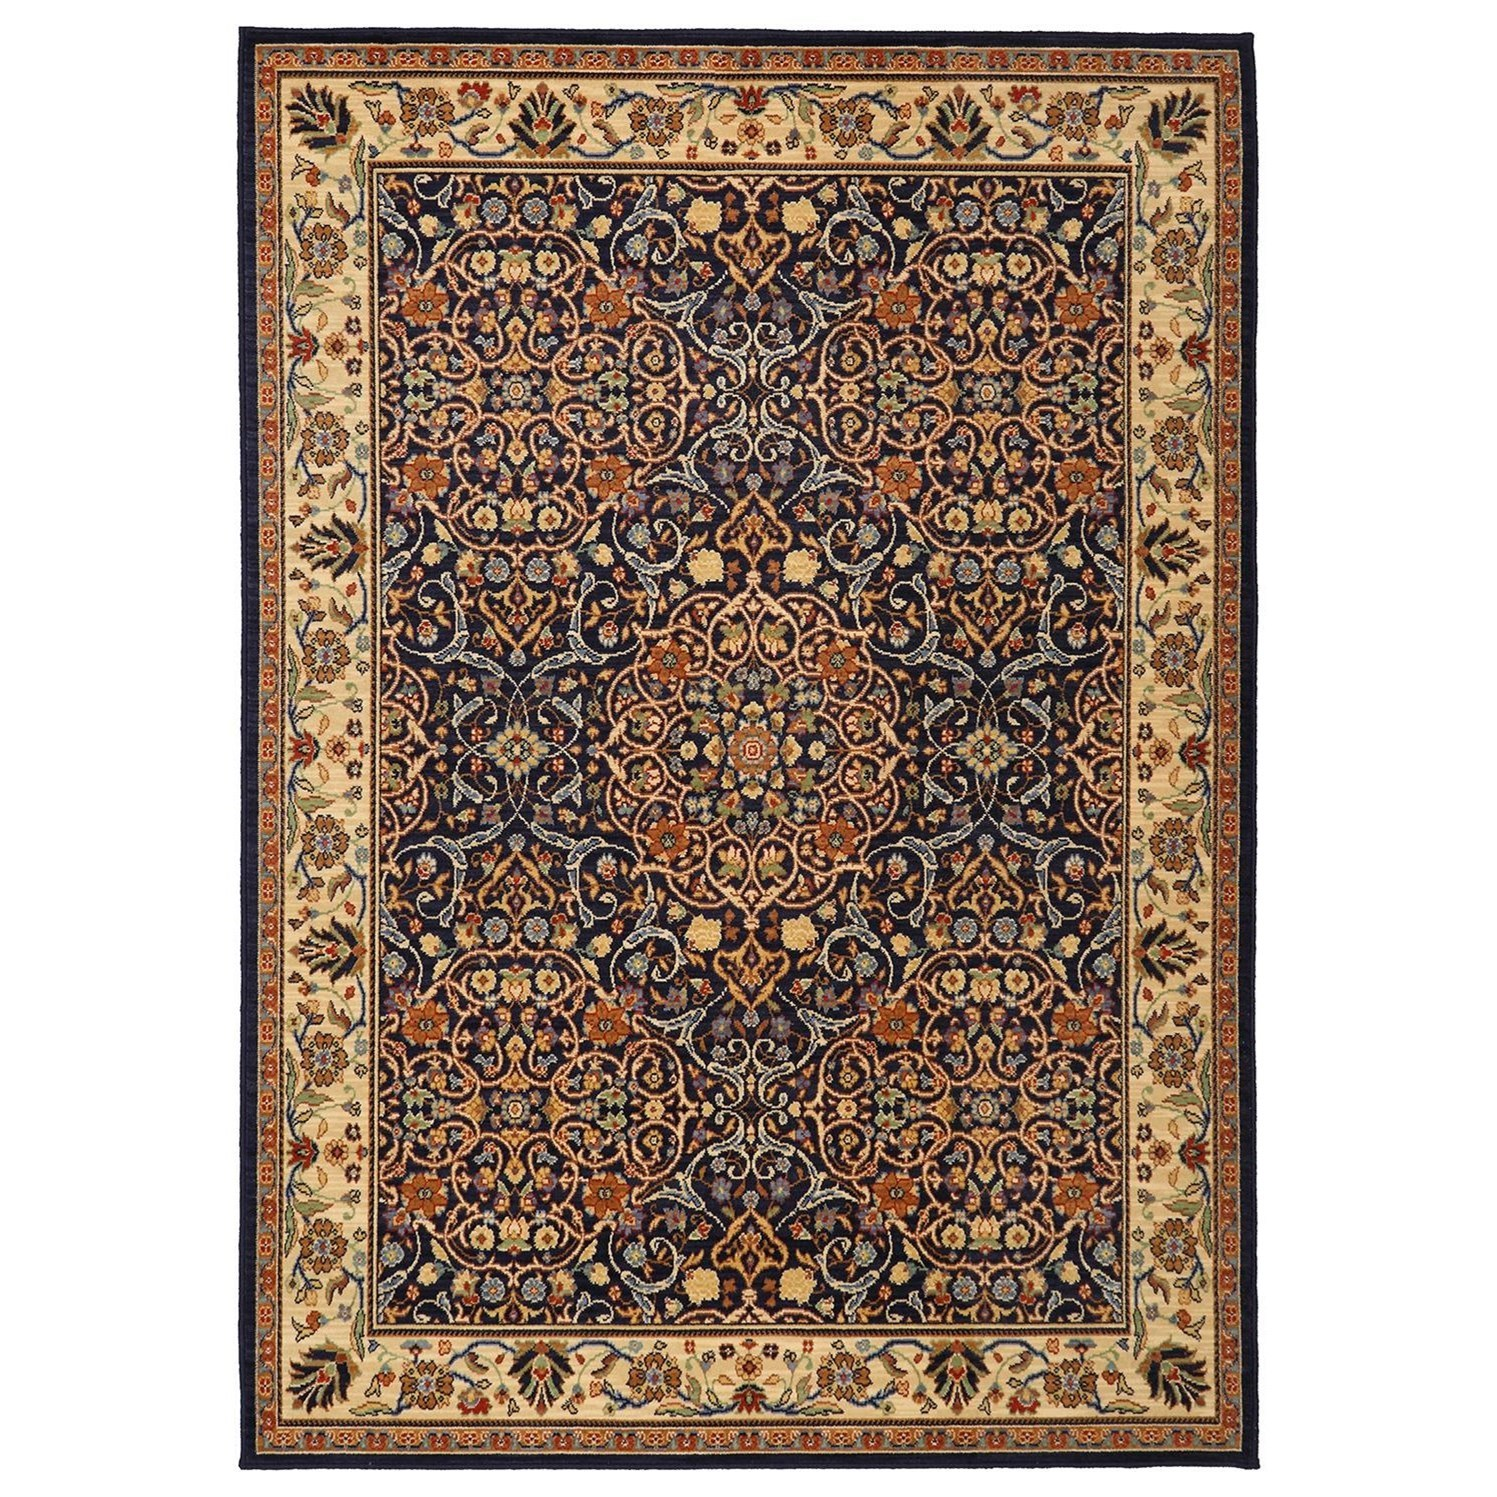 Karastan Rugs English Manor 5'7x7'11 Sutton Rug - Item Number: 02120 00603 067095